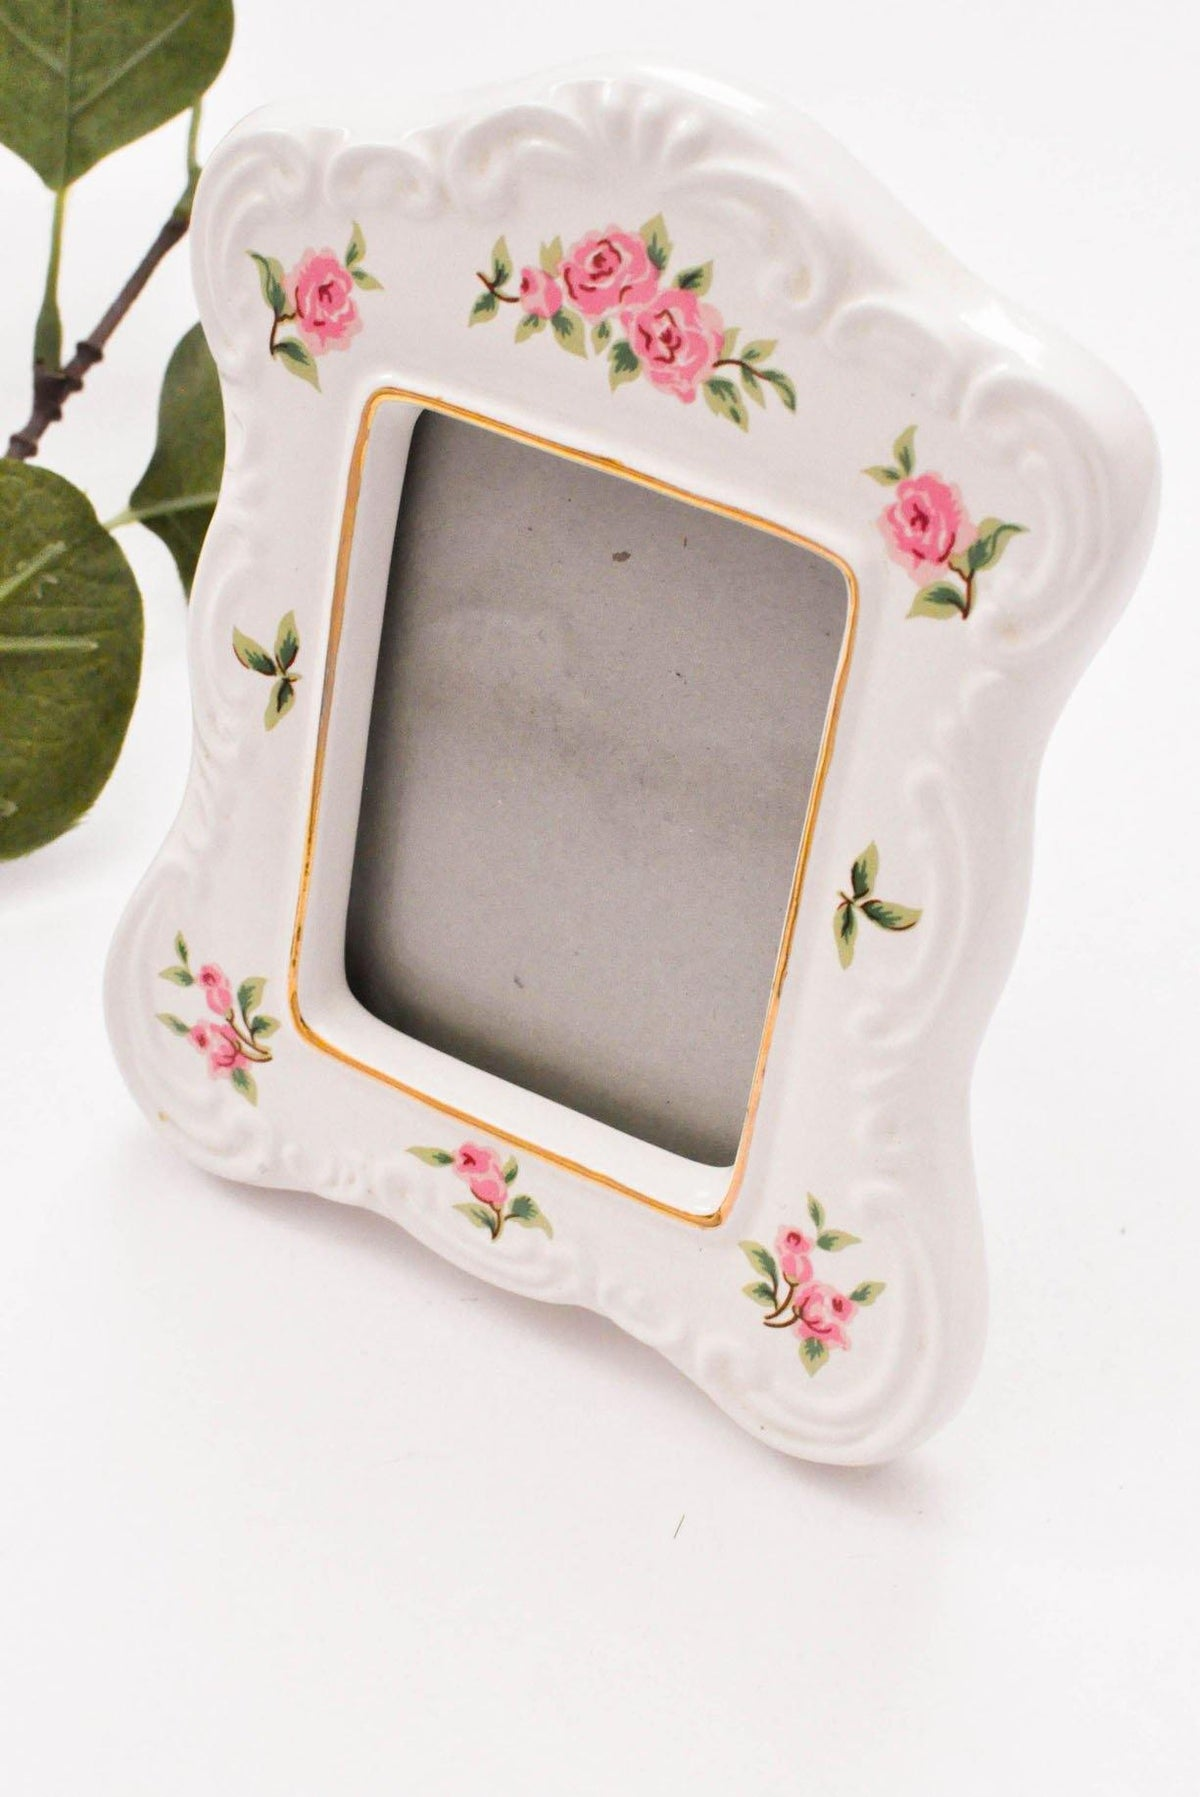 Floral painted photo frame from Sweet & Spark.